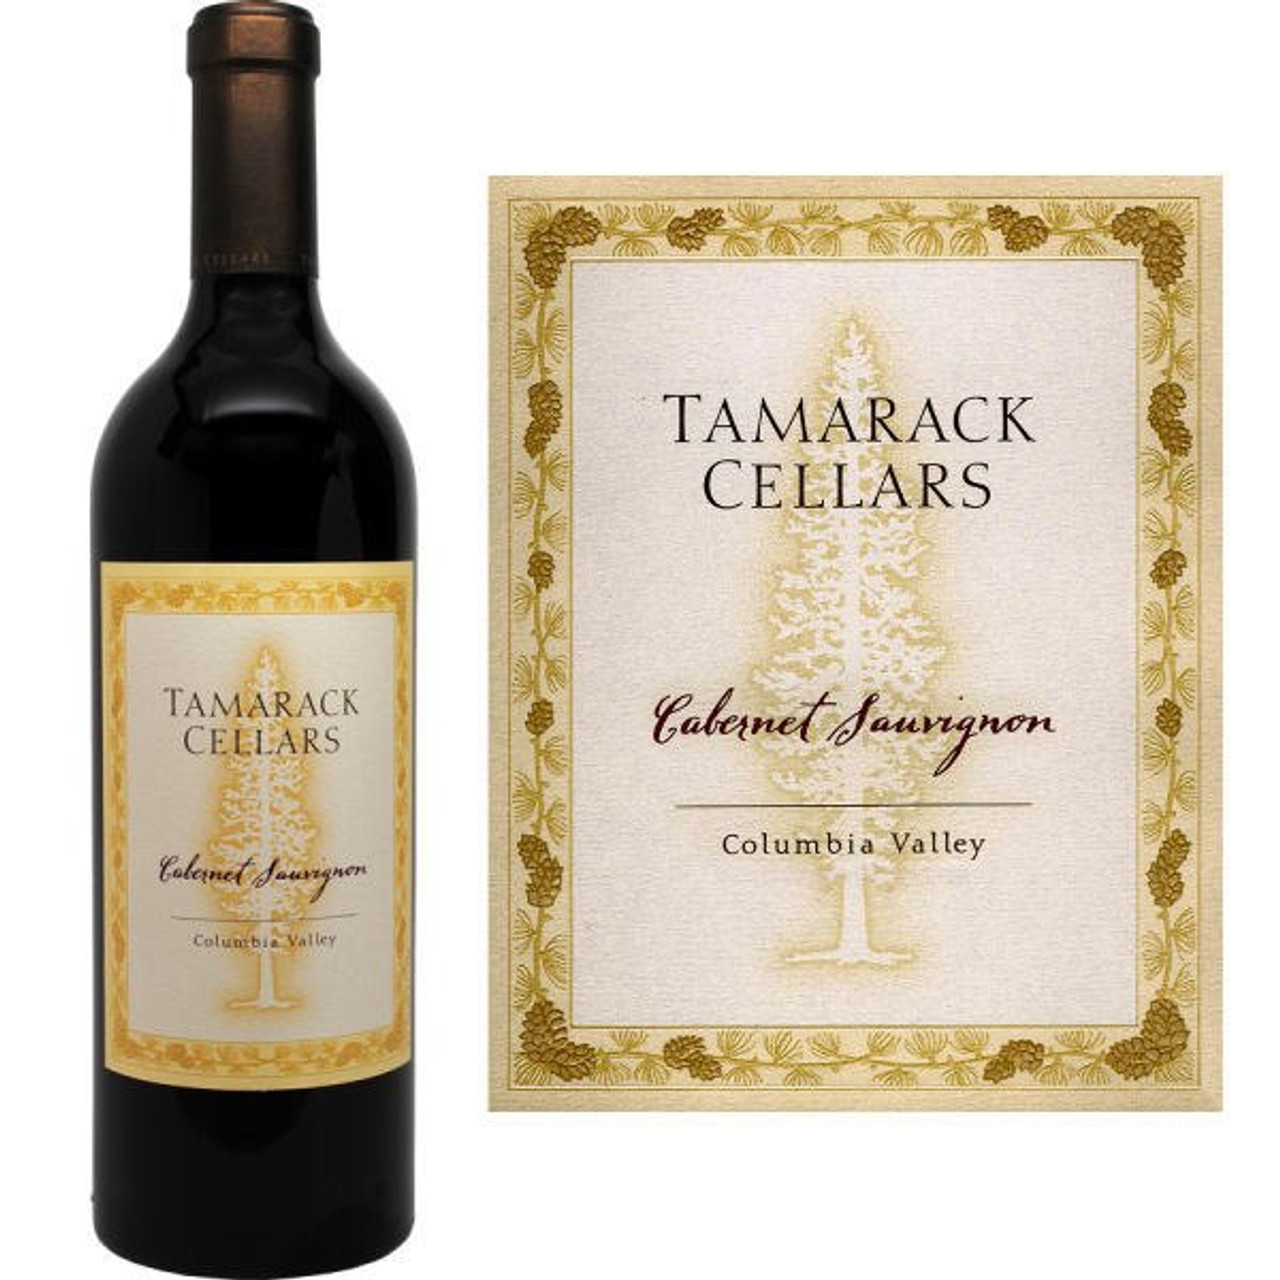 Tamarack Cellars Columbia Valley Cabernet